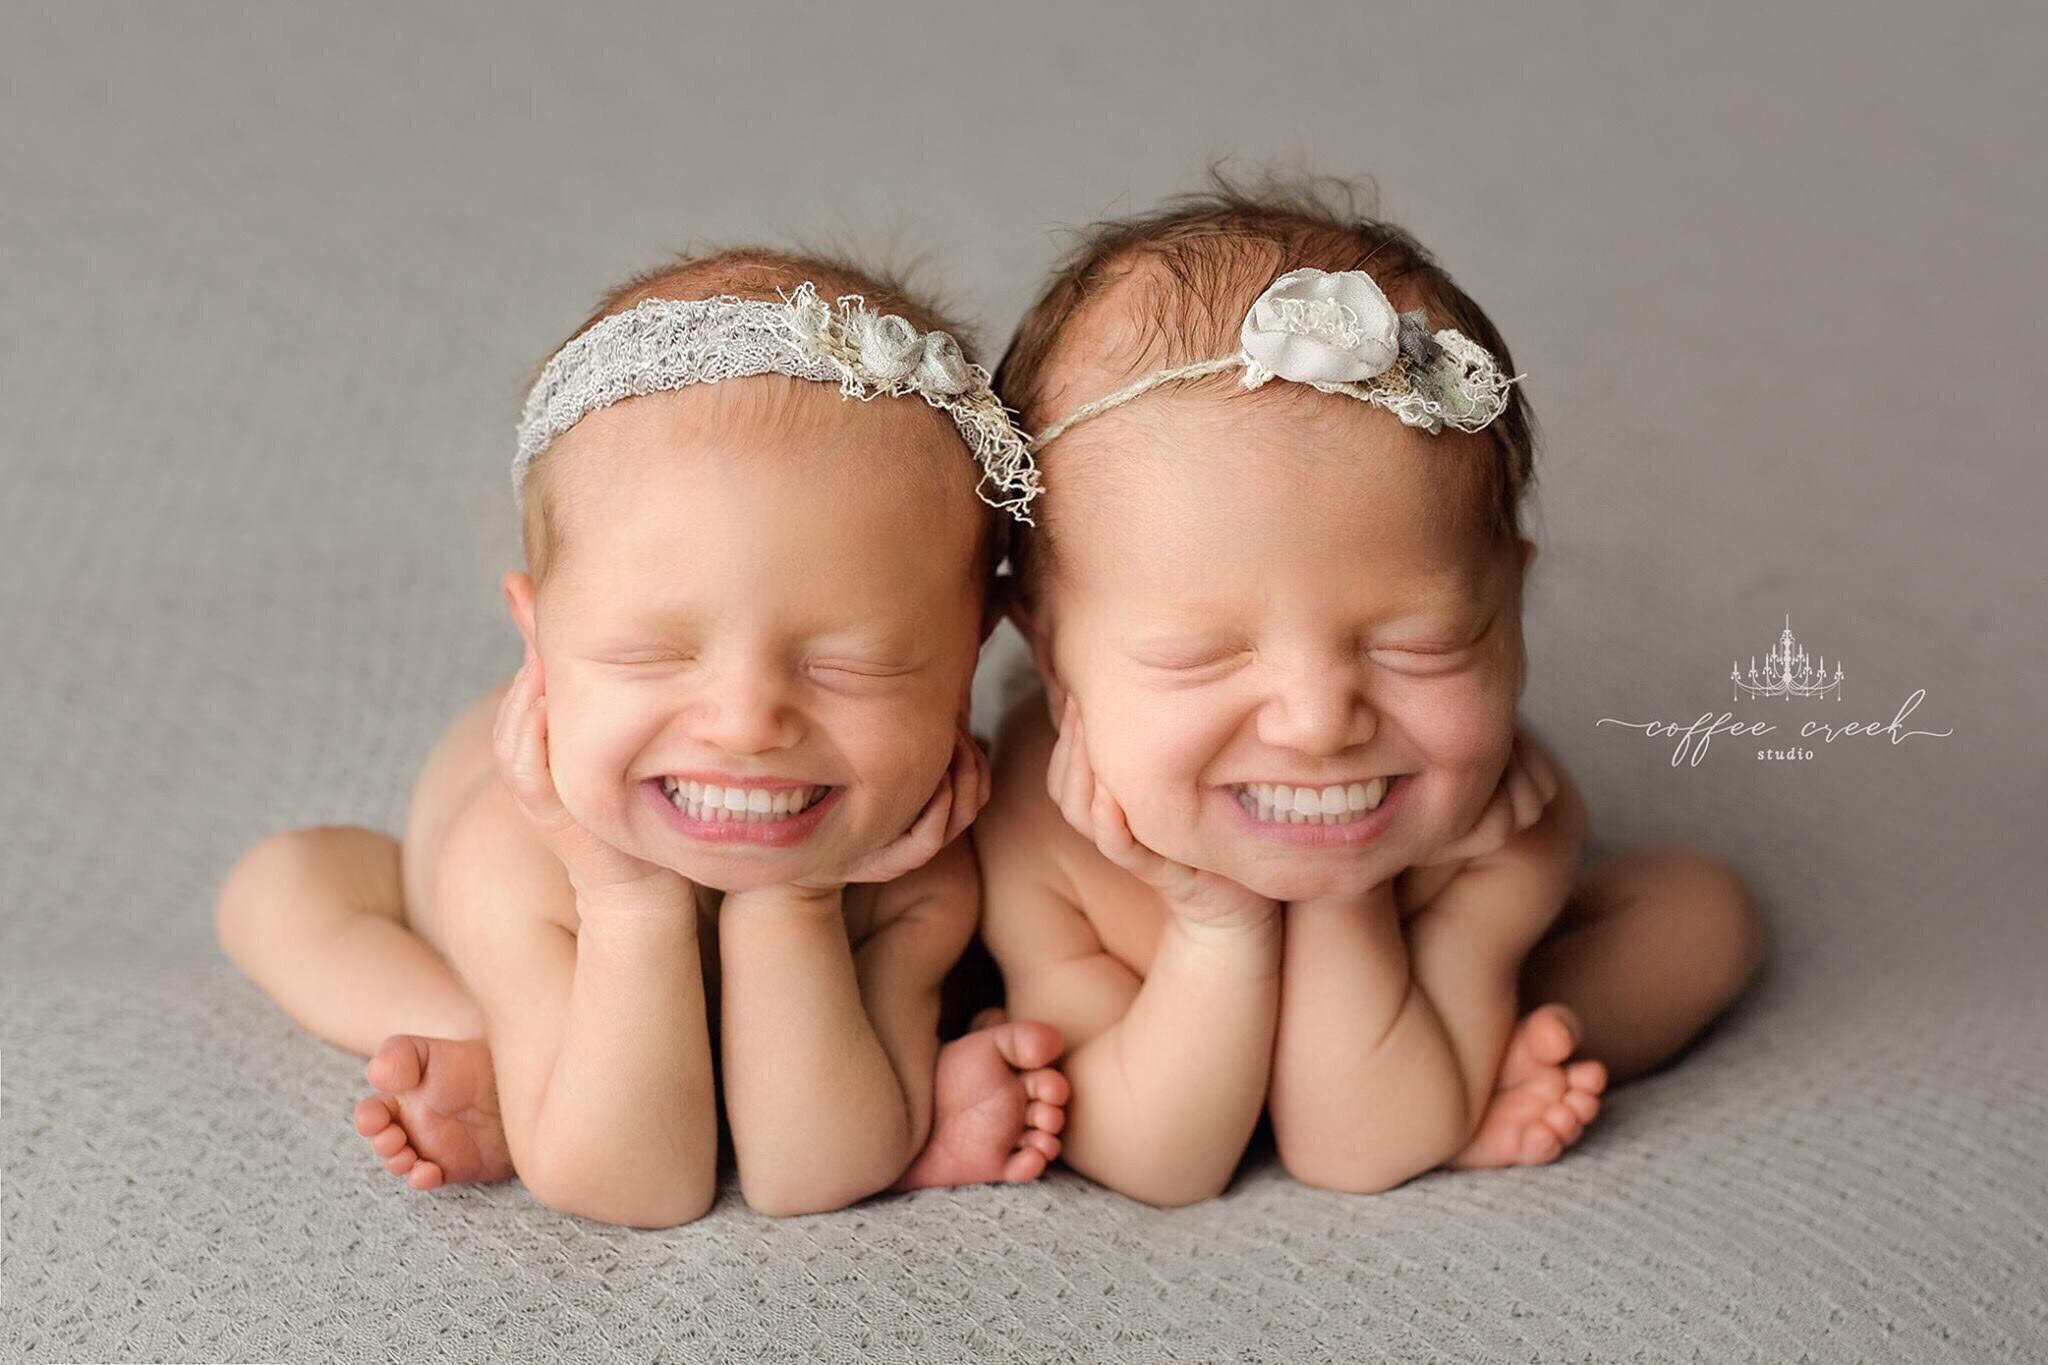 Photographer Adds Toothy Grins to Baby Portraits & It's Pretty Freaky